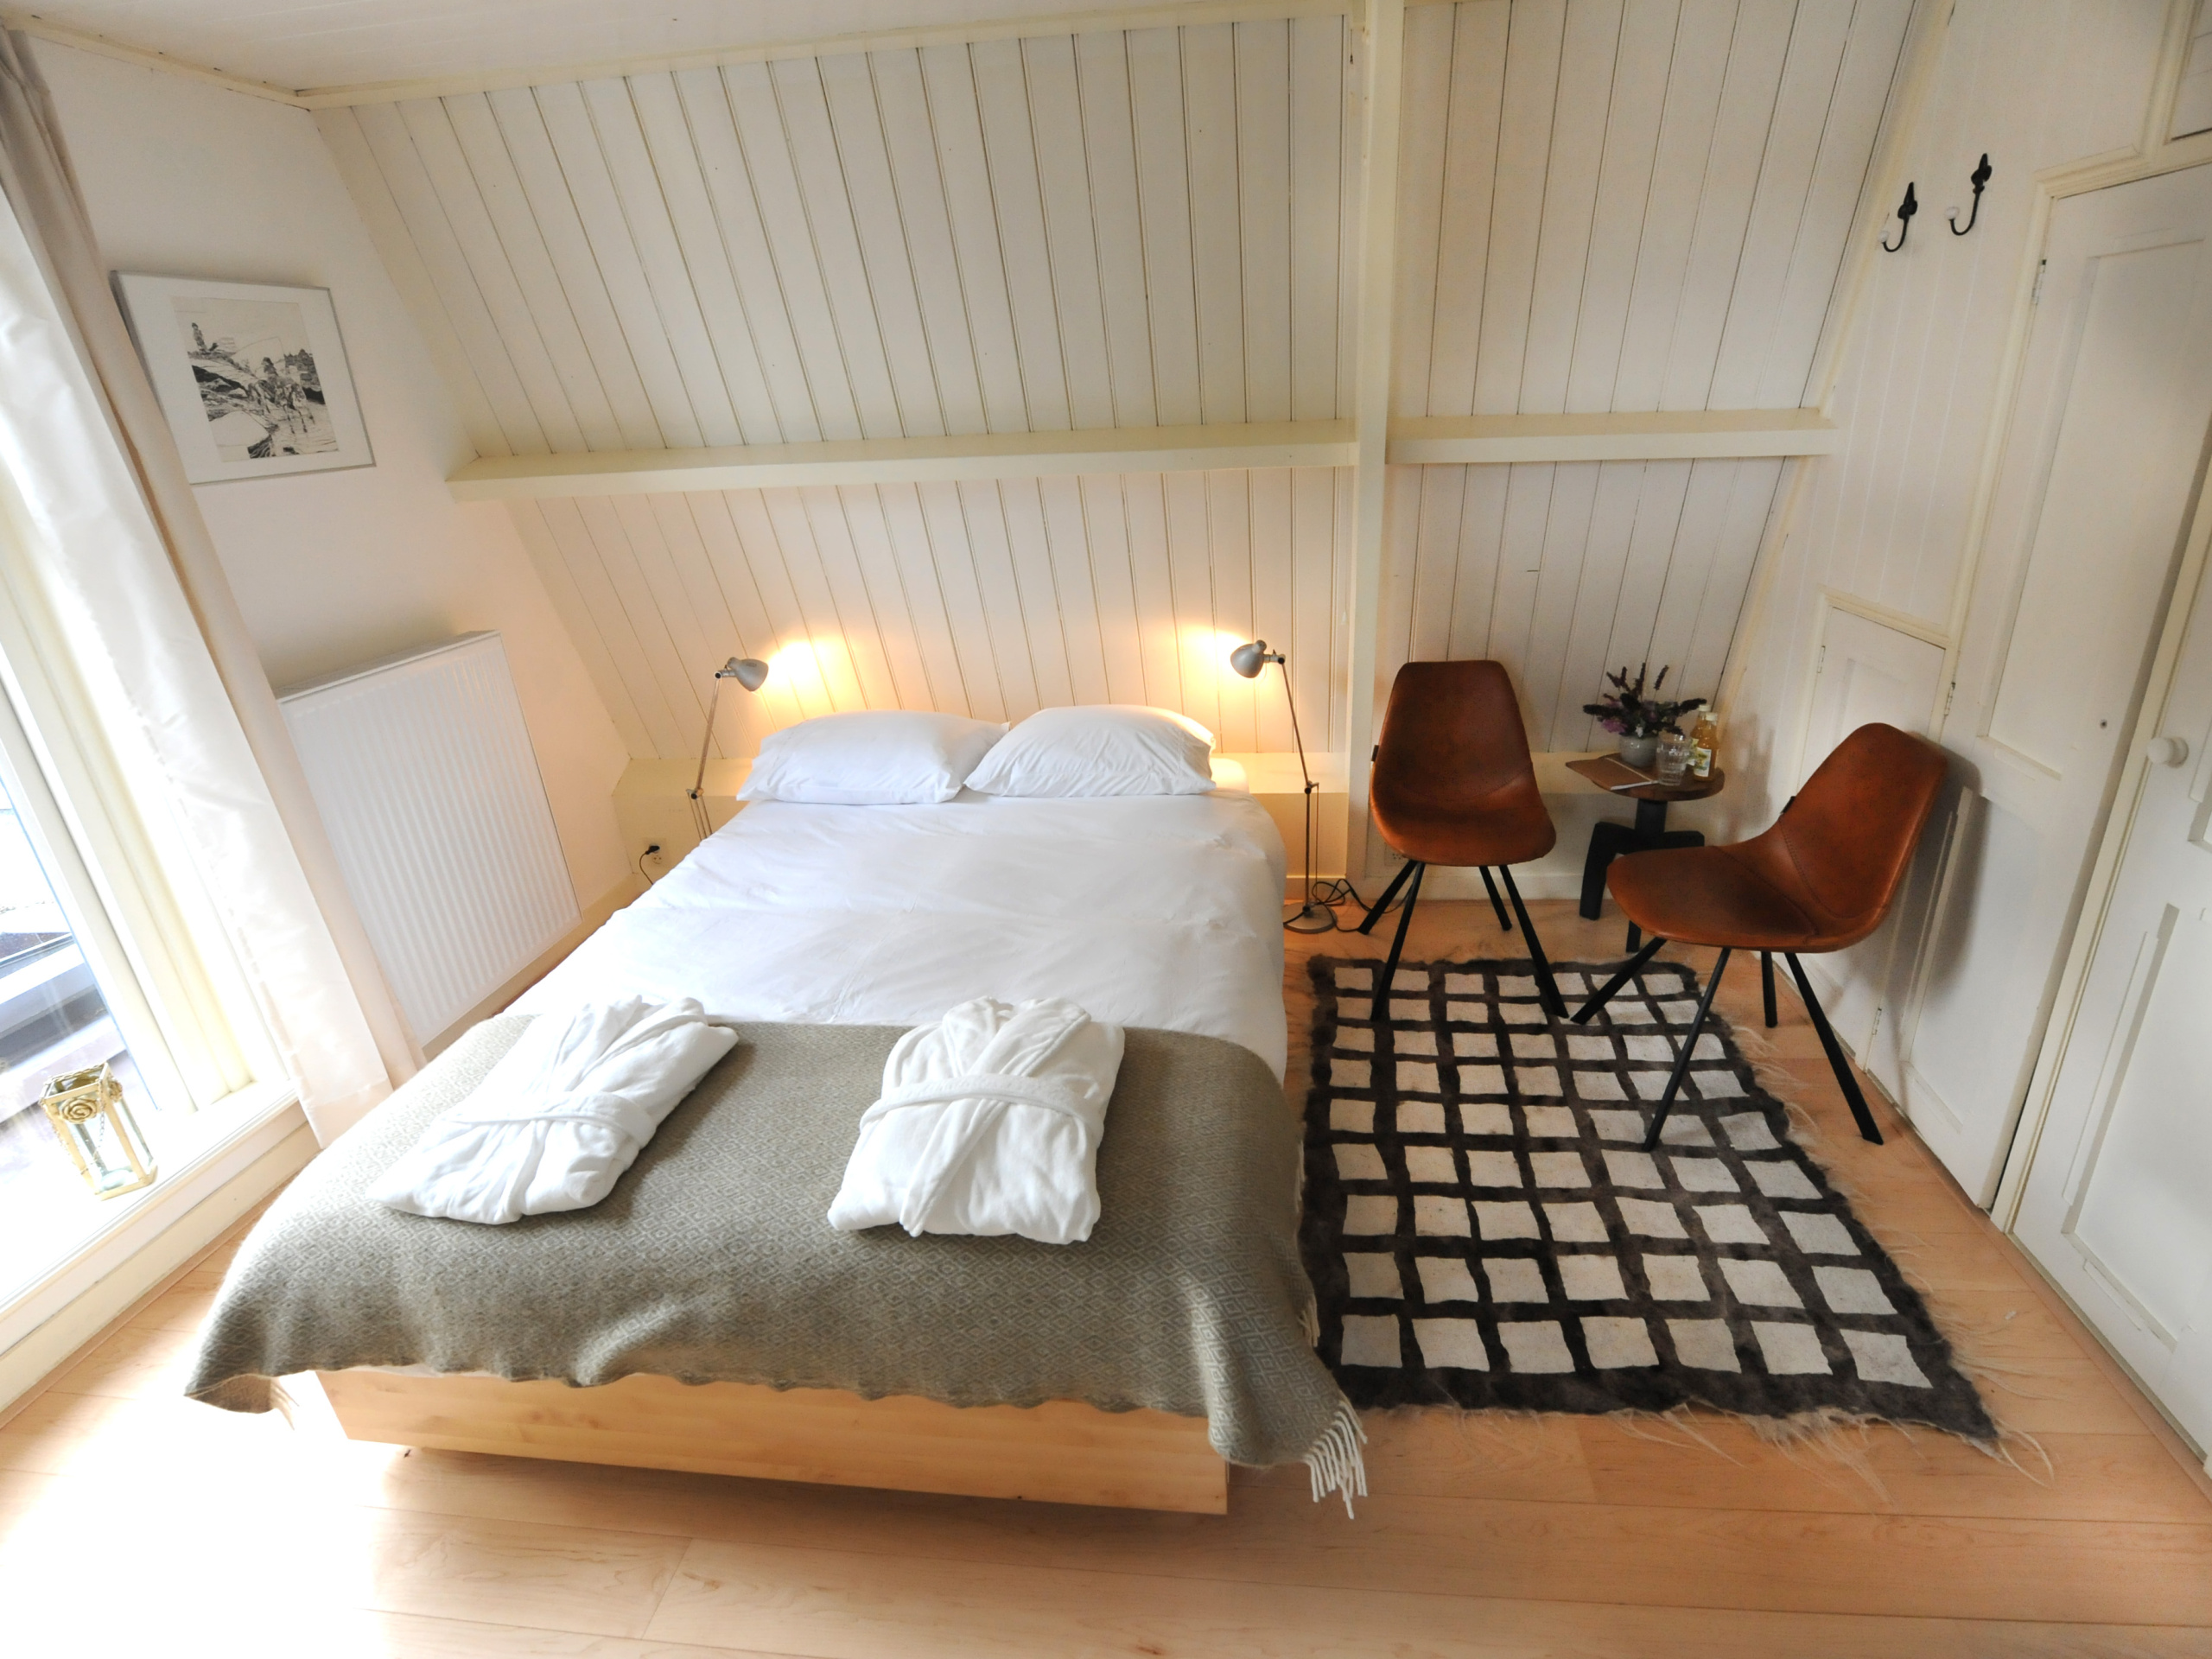 Atmospheric B&B with luxurious breakfast, quietly located in Den Burg